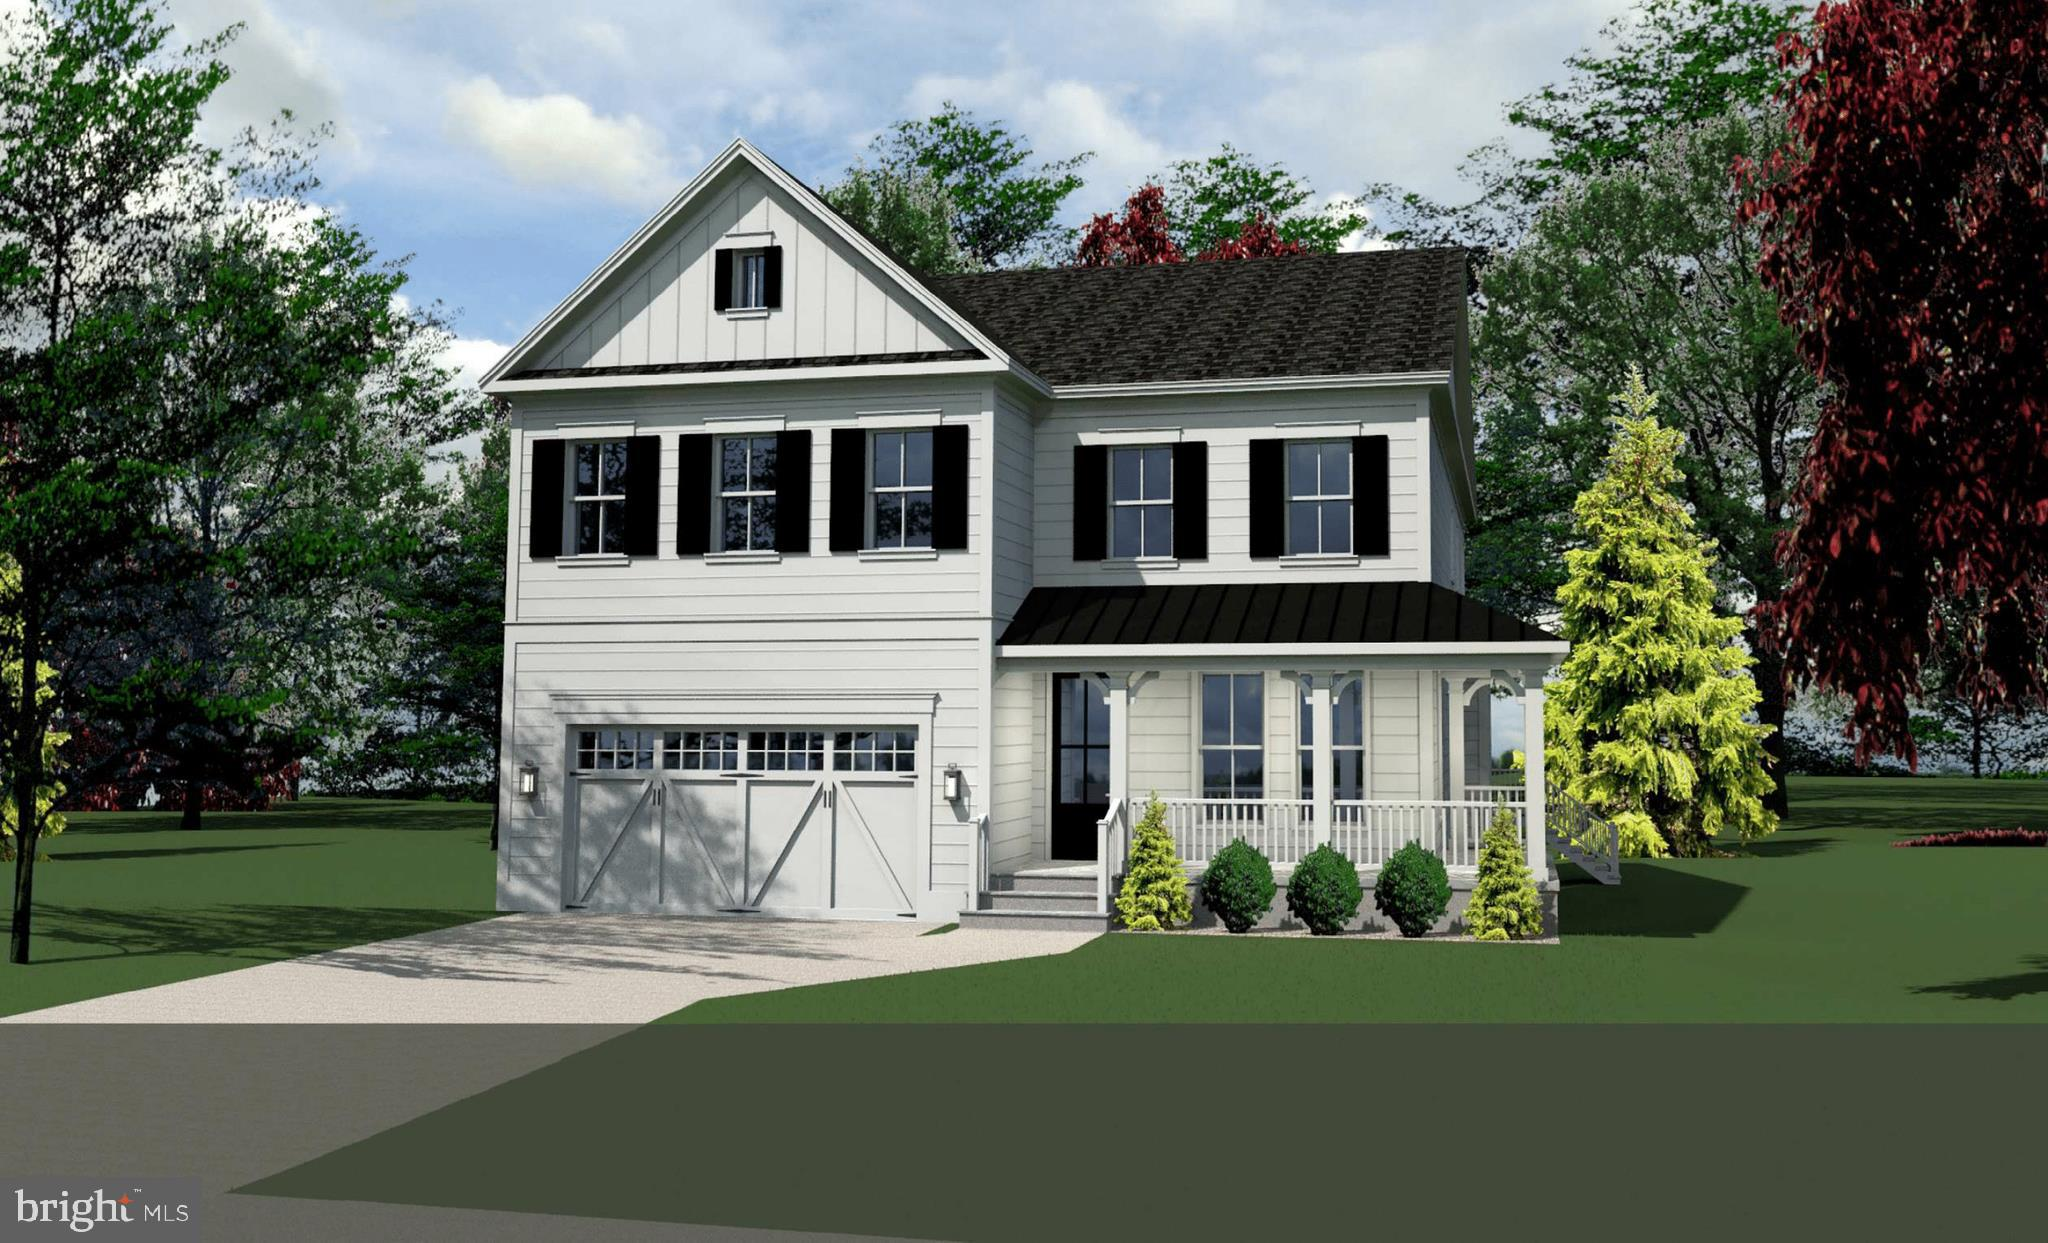 New construction in sought-after Wellington/ Waynewood Elementary.  Expected Delivery July 2019.    Welcome home to this stunning wrap around porch on beautiful 1/4 acre lot.  5 bedrooms + office and sitting room/room sized walk in closet.  Open concept main level, laundry room on bedroom level, mudroom, pantry, kohler fixtures, high-end appliances. Asking price reflects main and upper levels finished+ partially finished basement. Additional~ upgrades and options available (screened in porch instead of deck, wet bar in basement, finished gym)